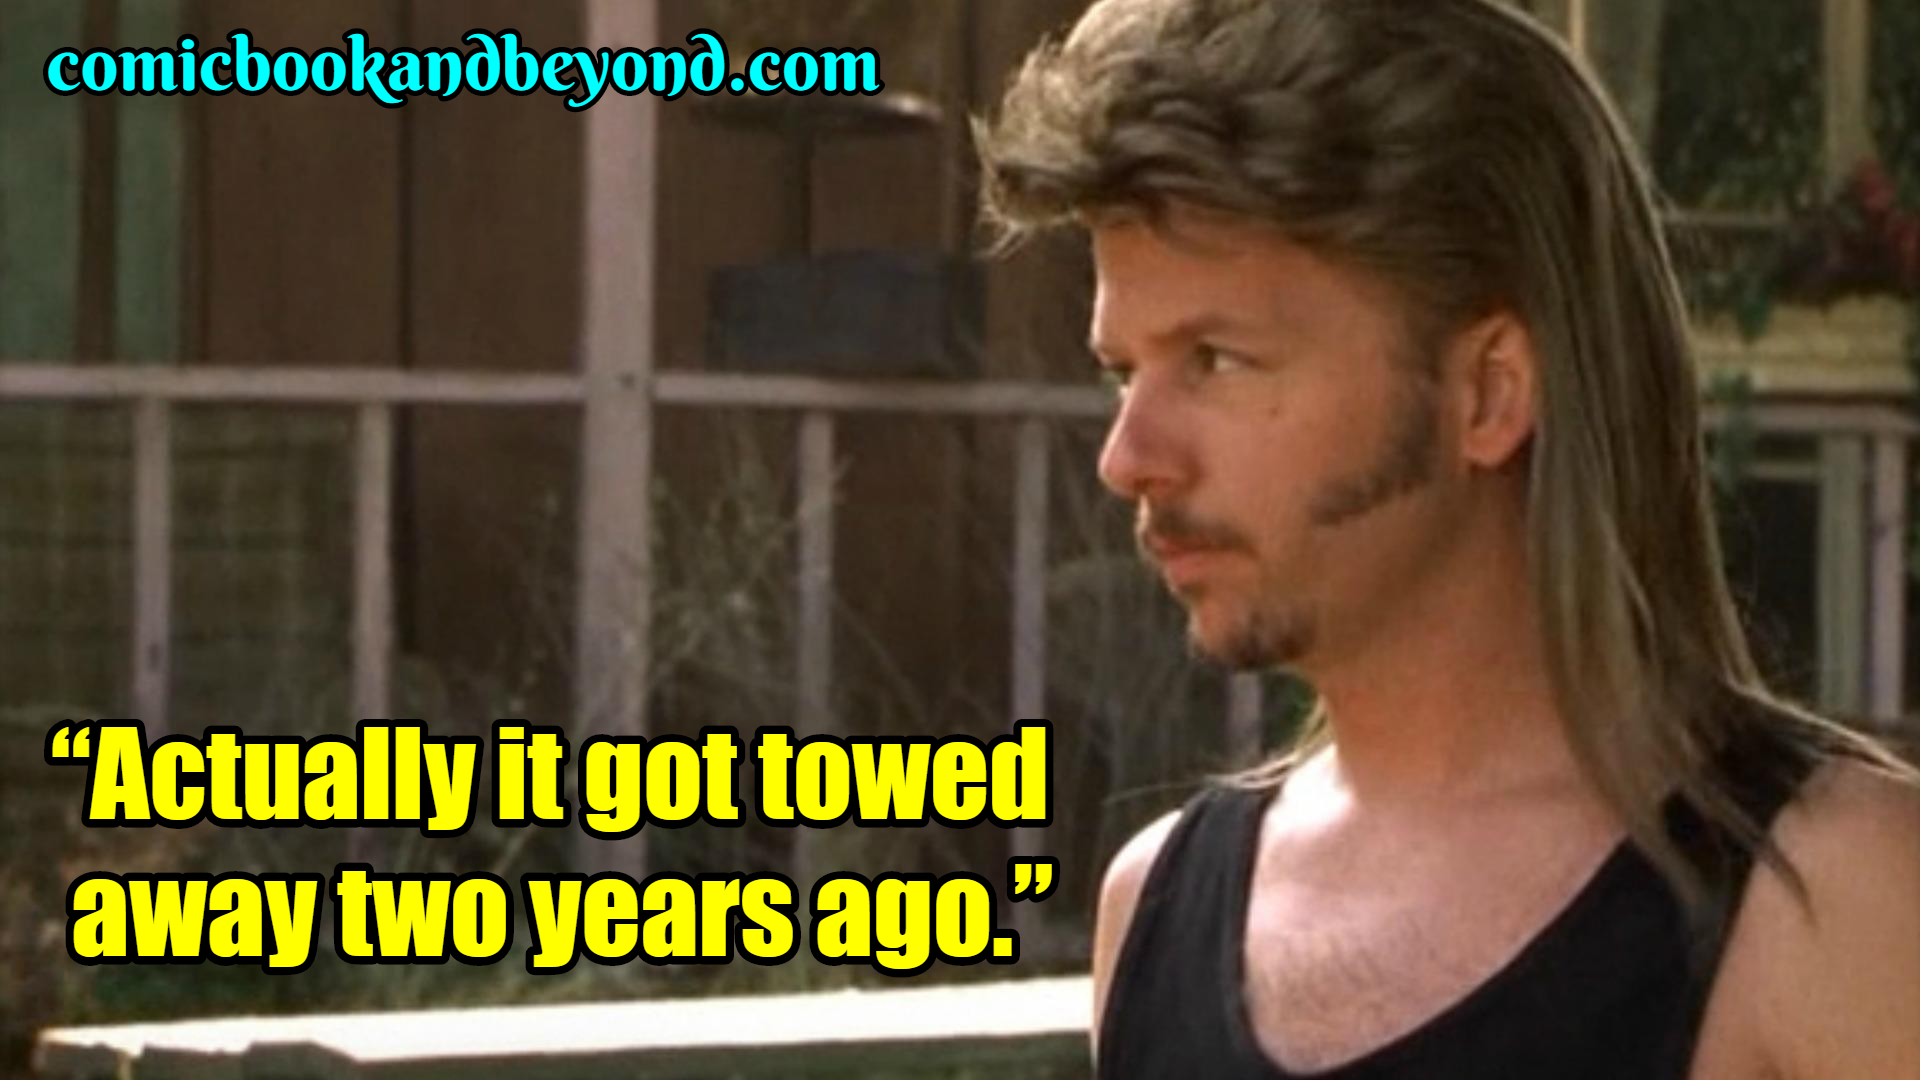 Joe Dirt famous Quotes (5)